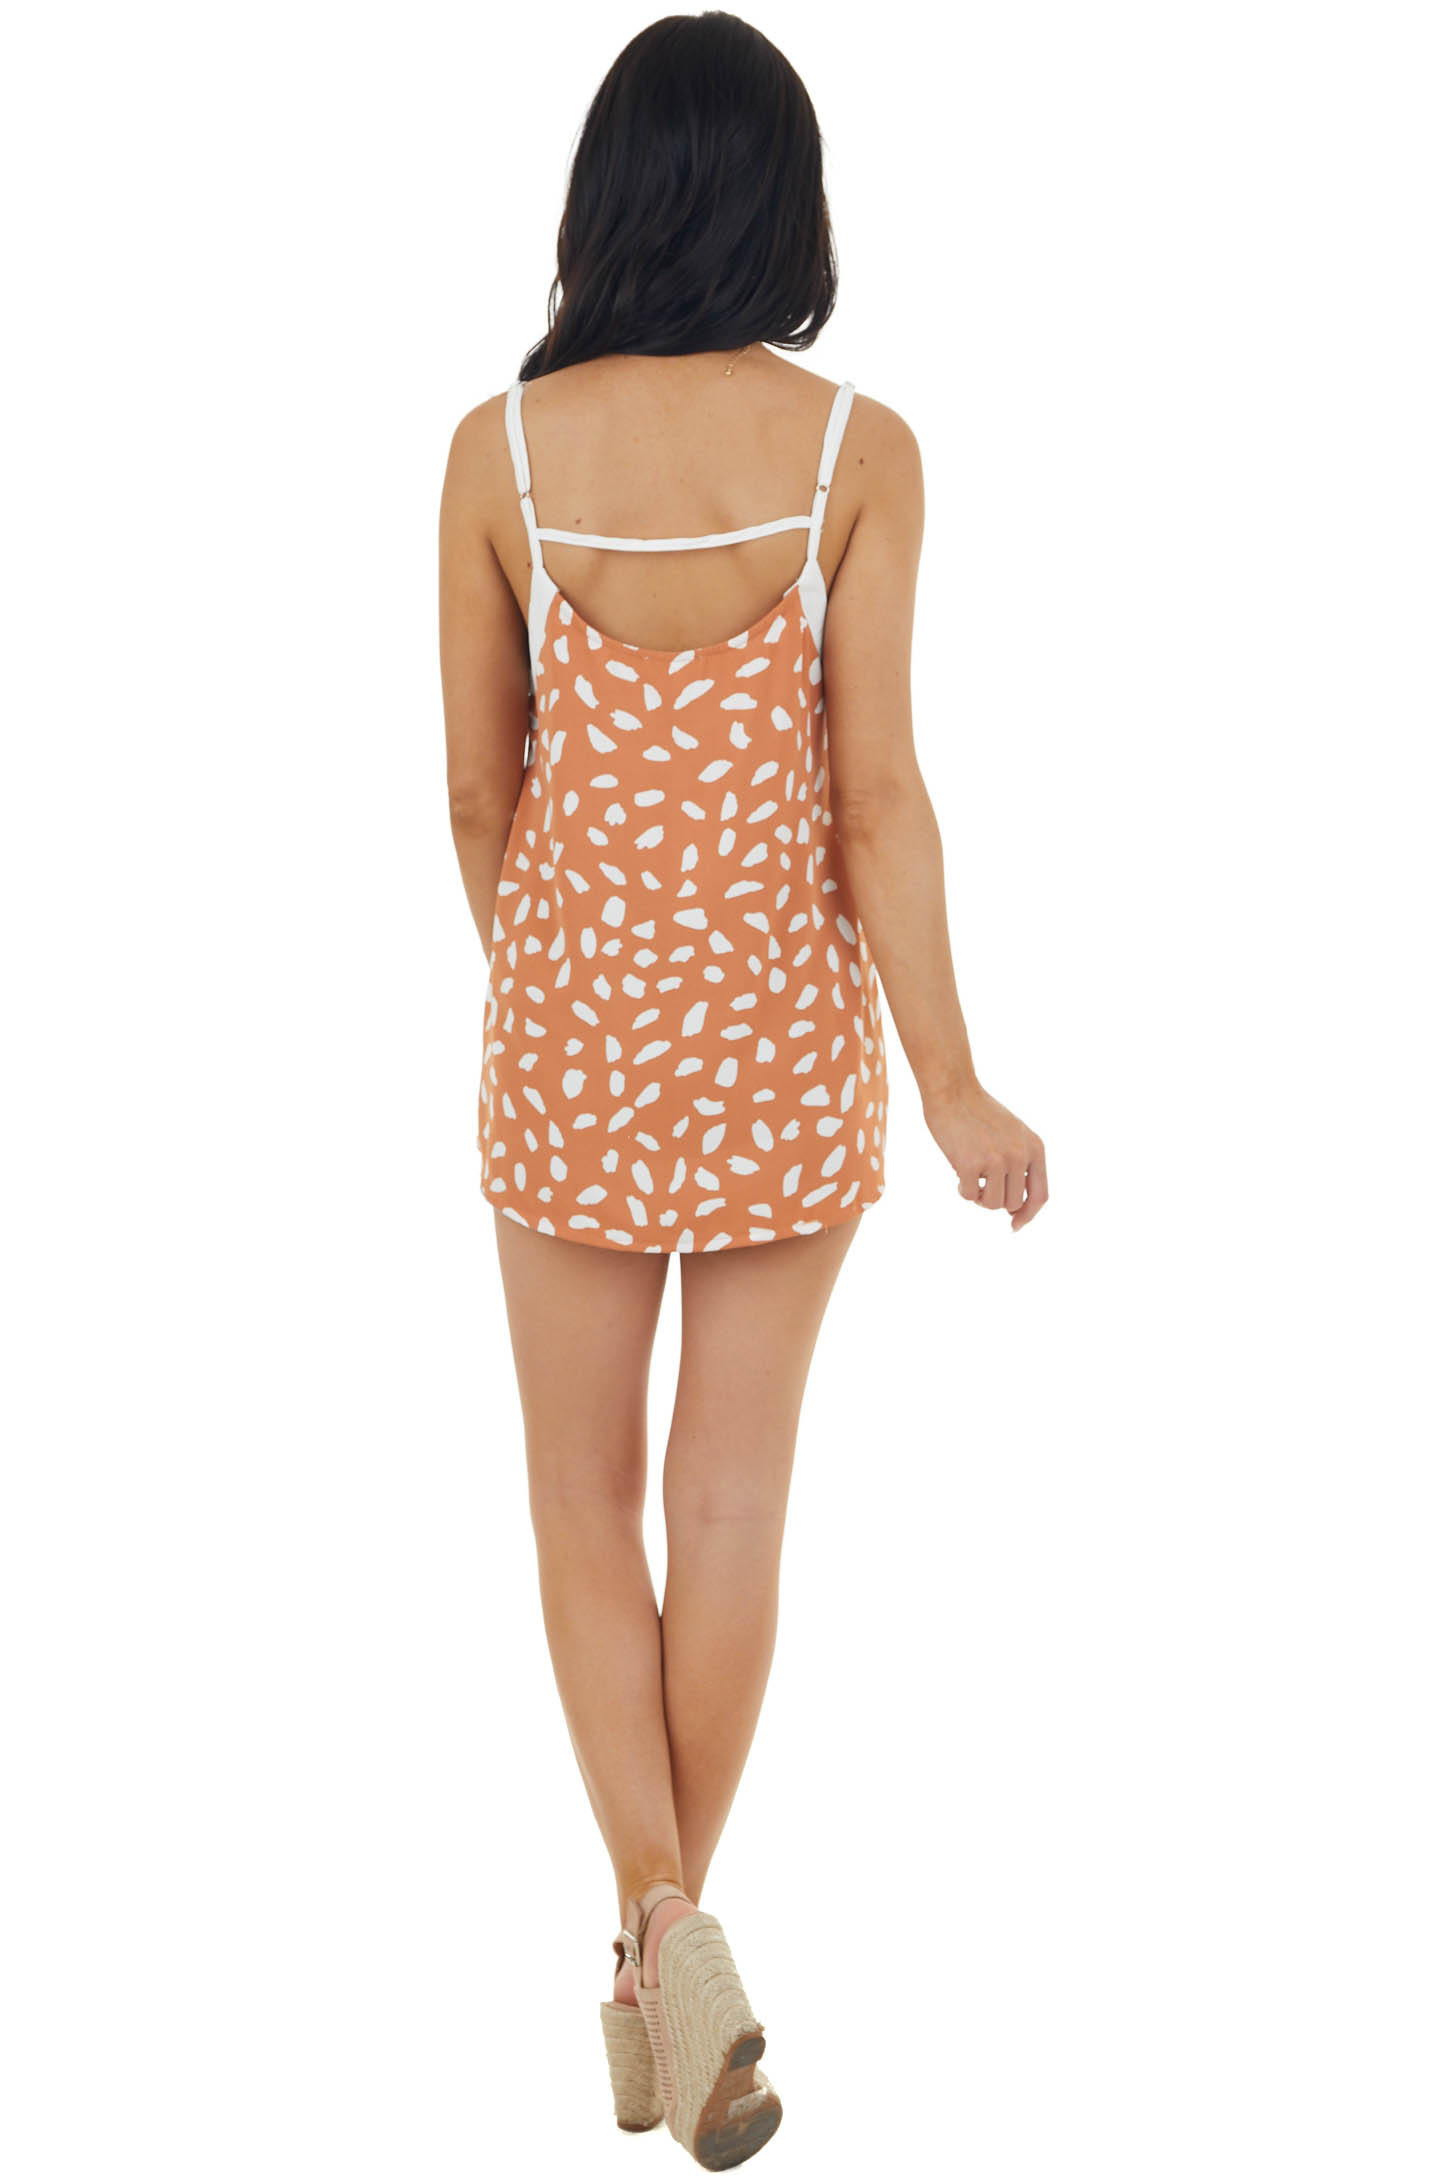 Copper and Ivory Cheetah Print Sleeveless Woven Tank Top